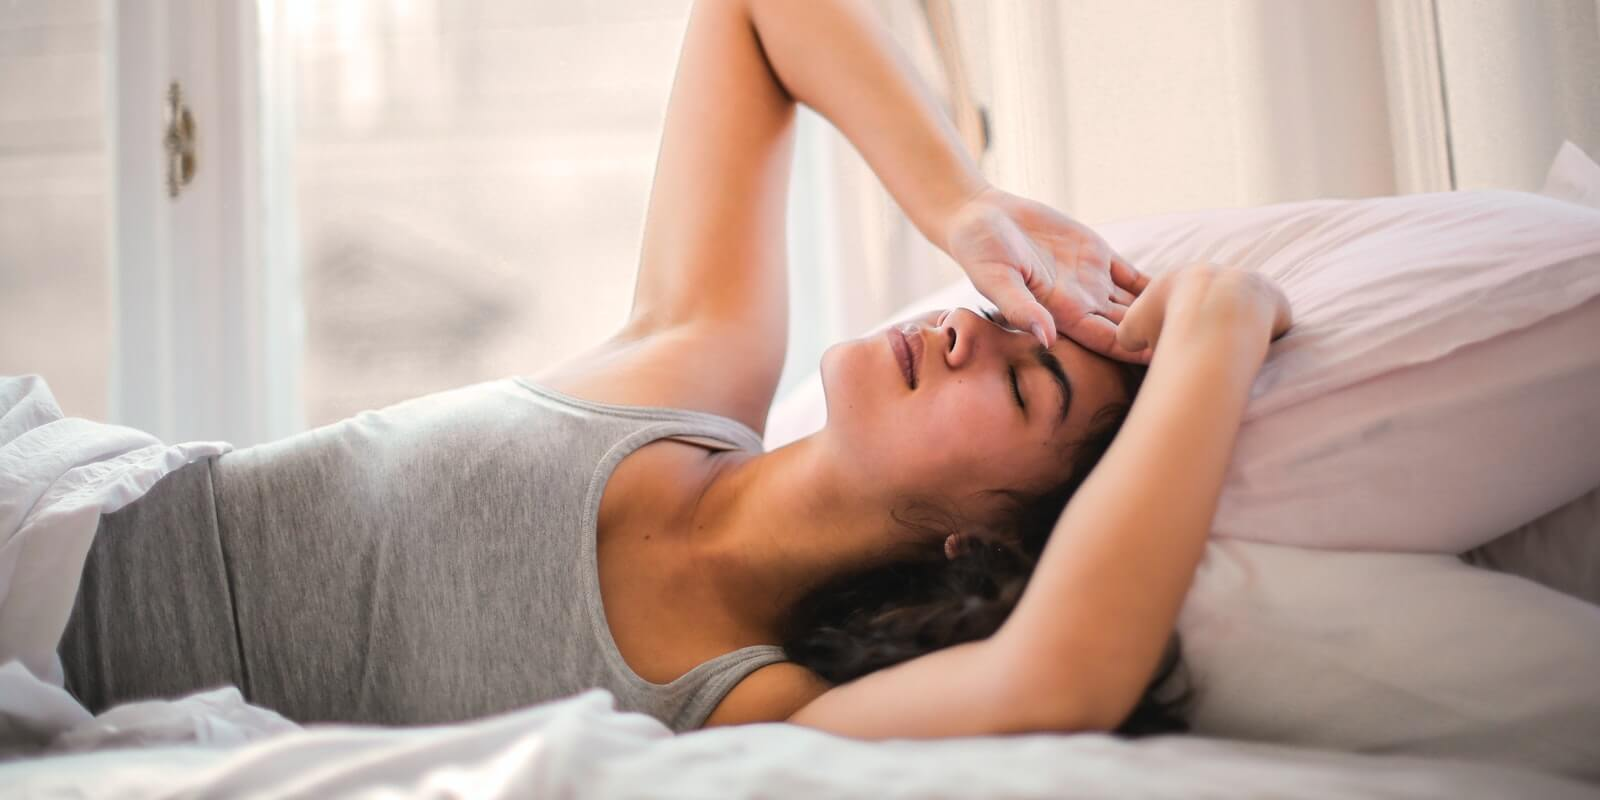 Woman in grey tank top lying in bed having headache and body pain